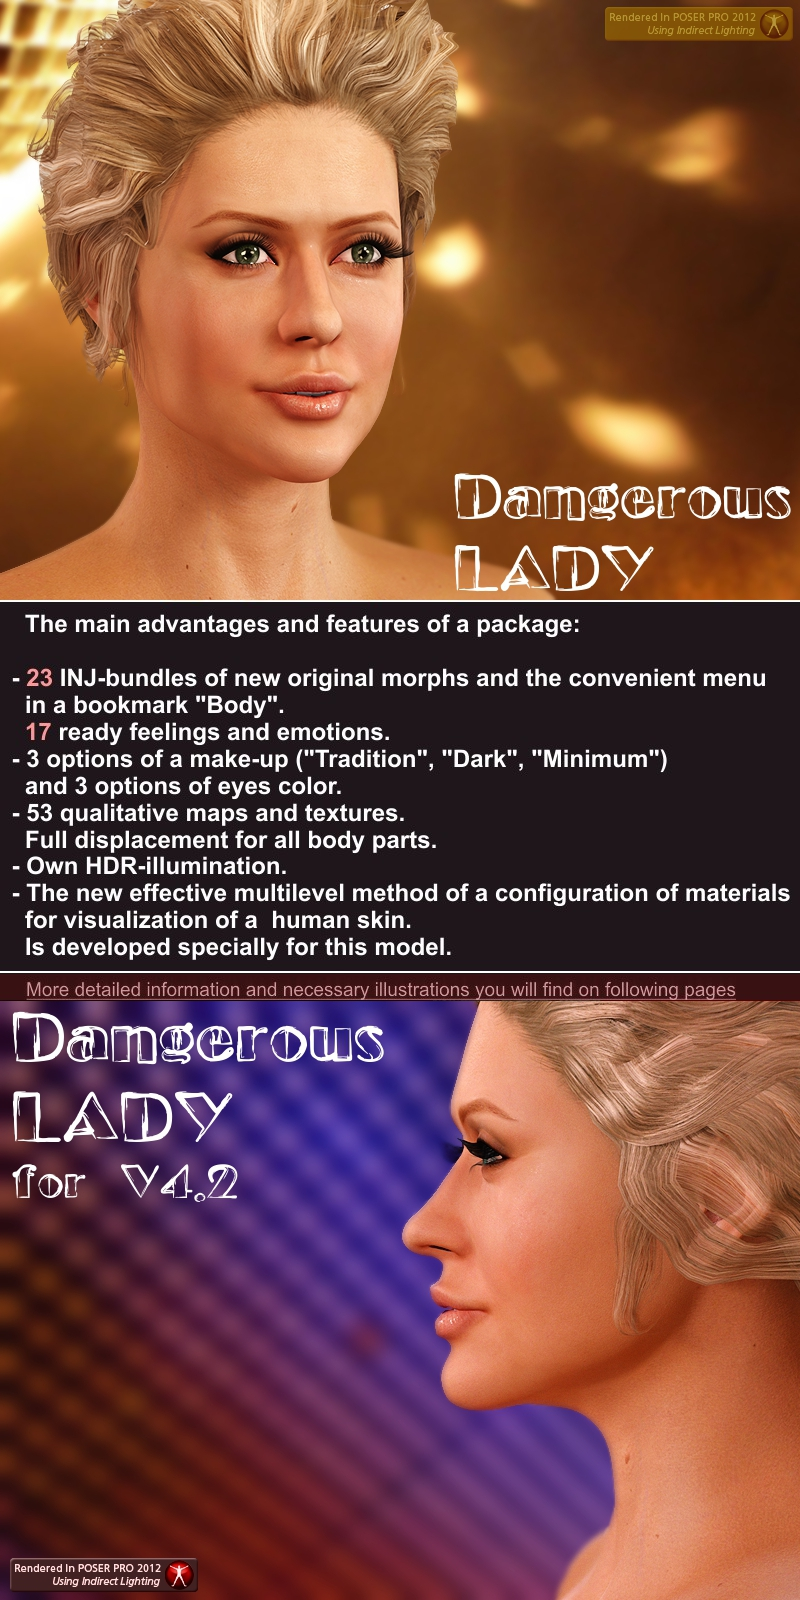 Dangerous LADY for V4.2